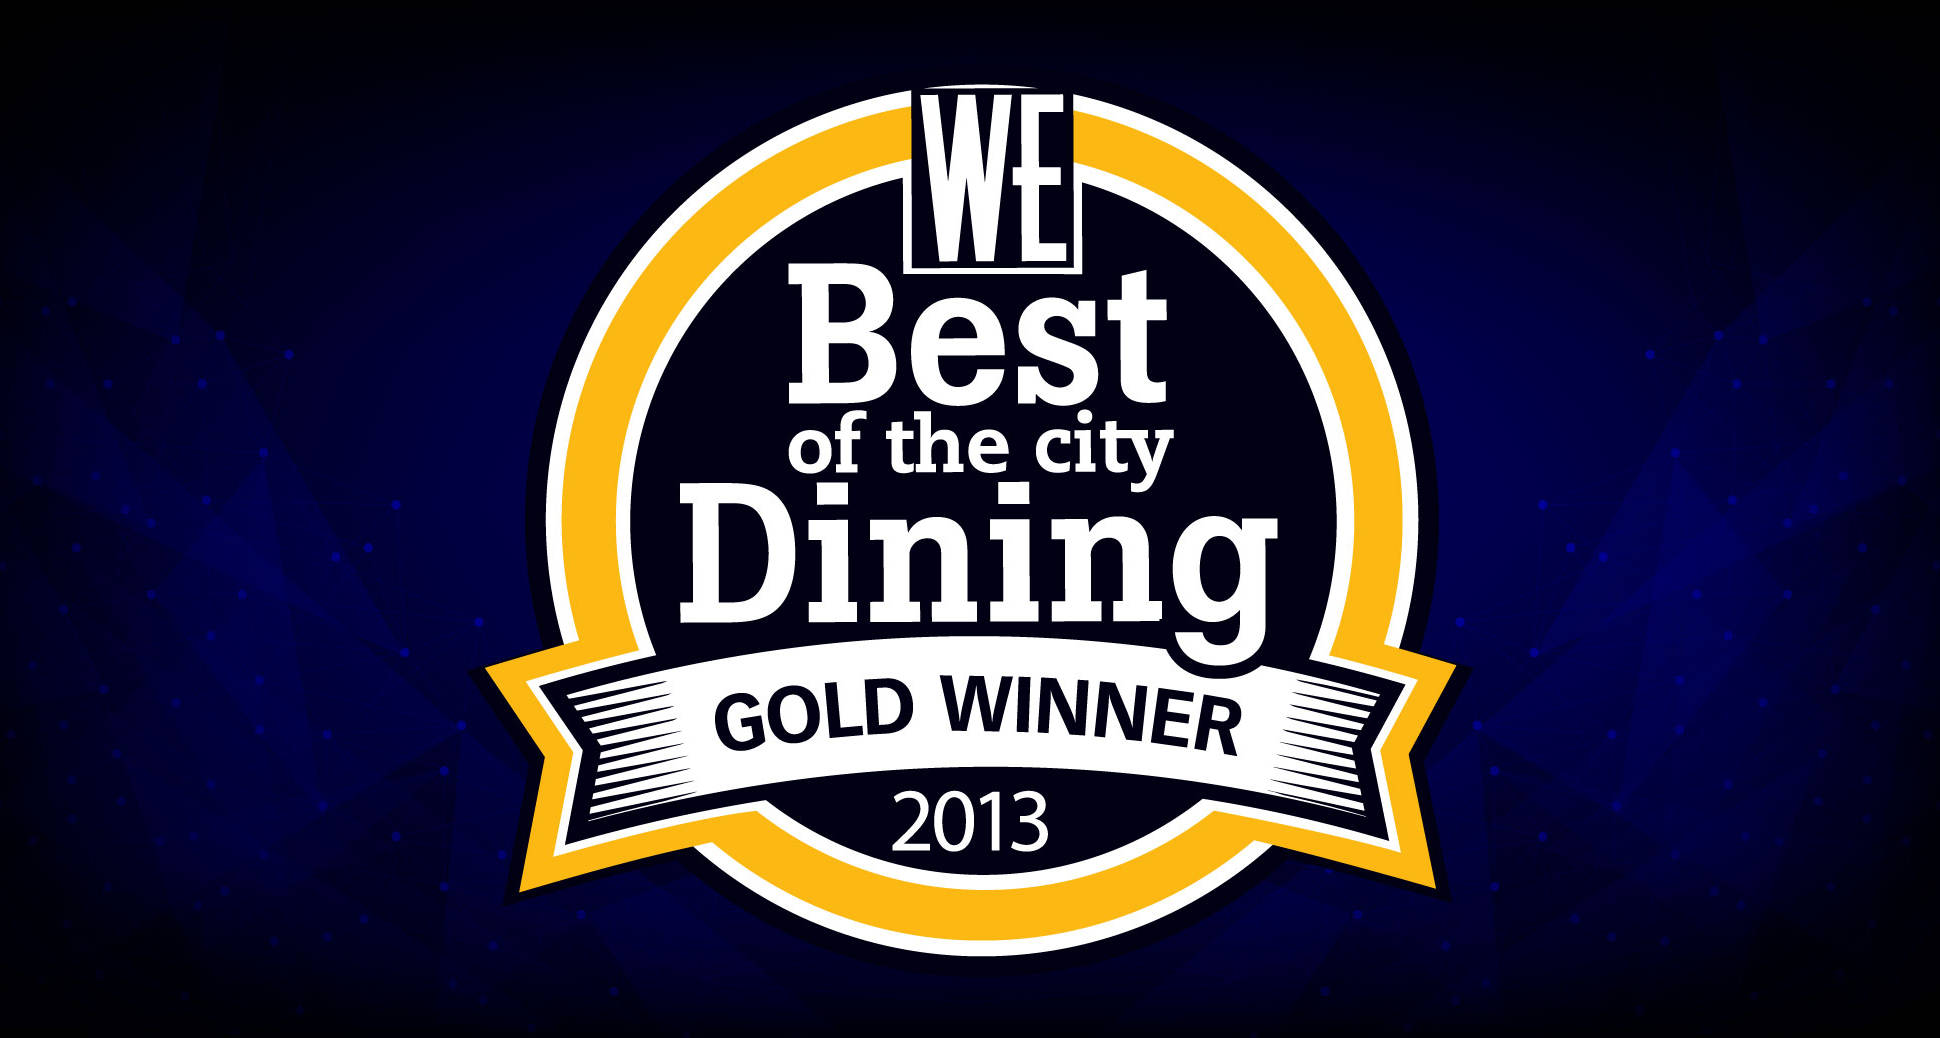 Sura is the best Korean winner of WE Vancouver's best of the city dining 2013!